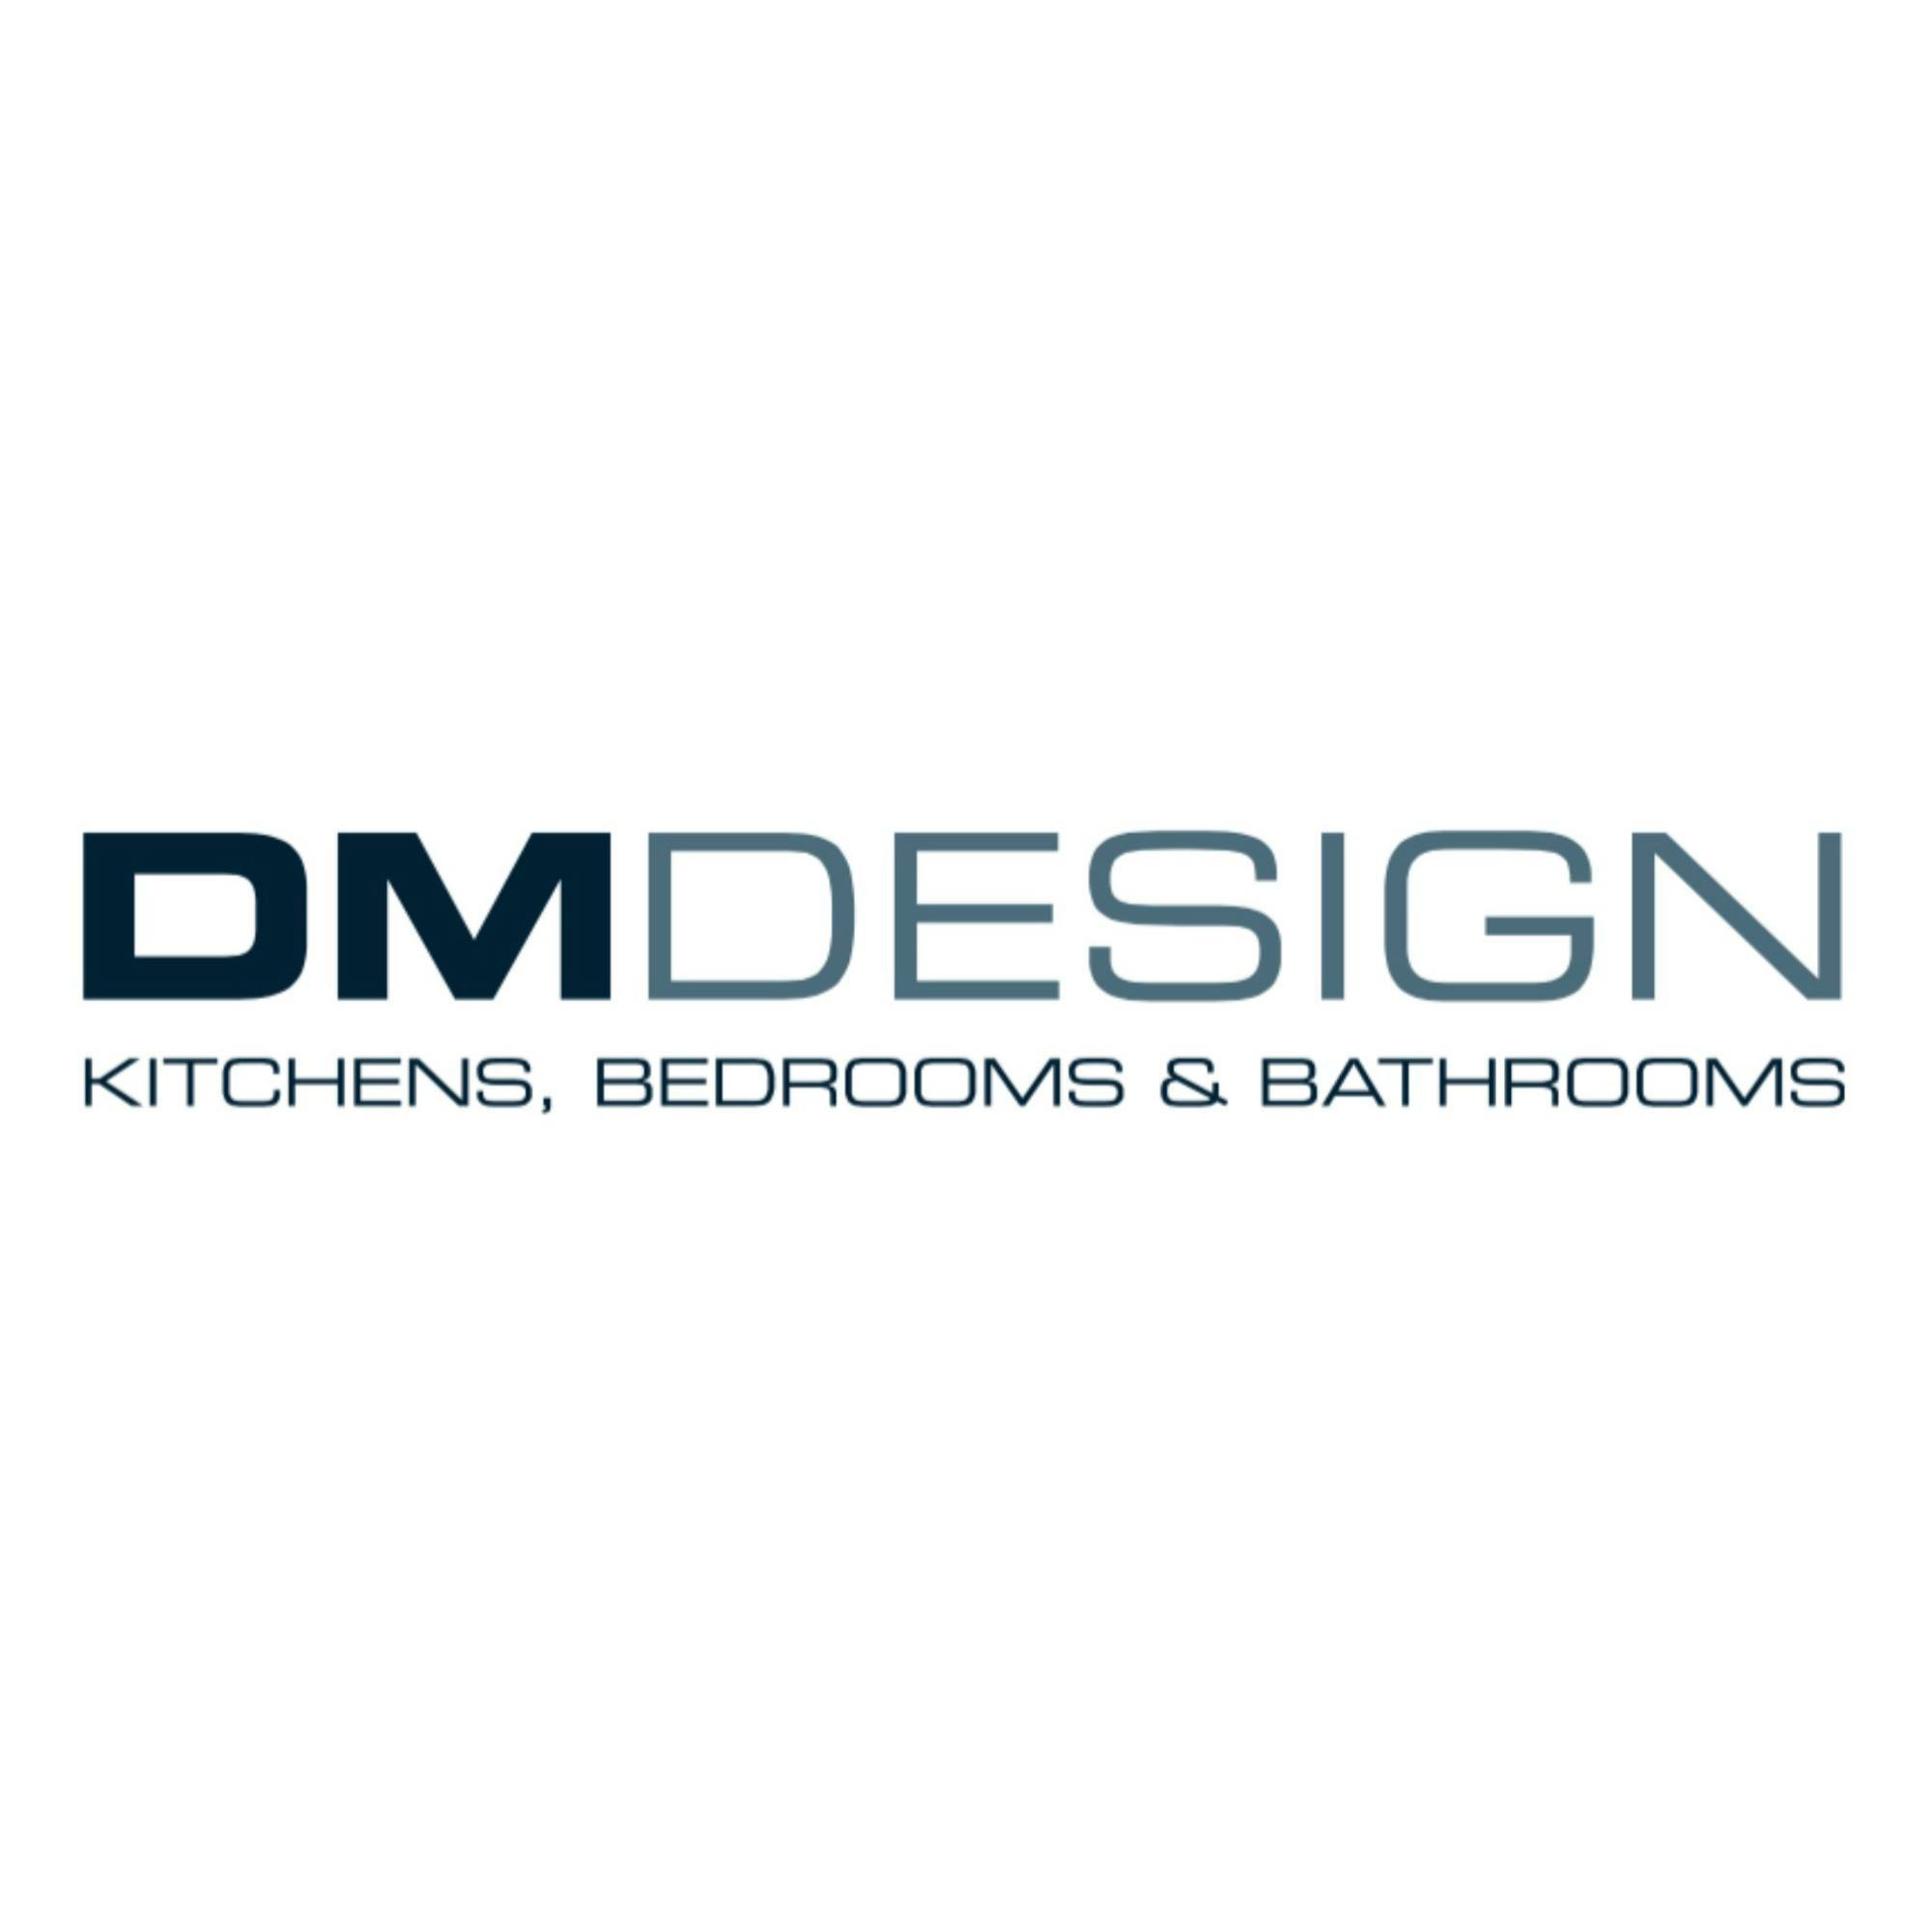 d m design reviews | read customer service reviews of www